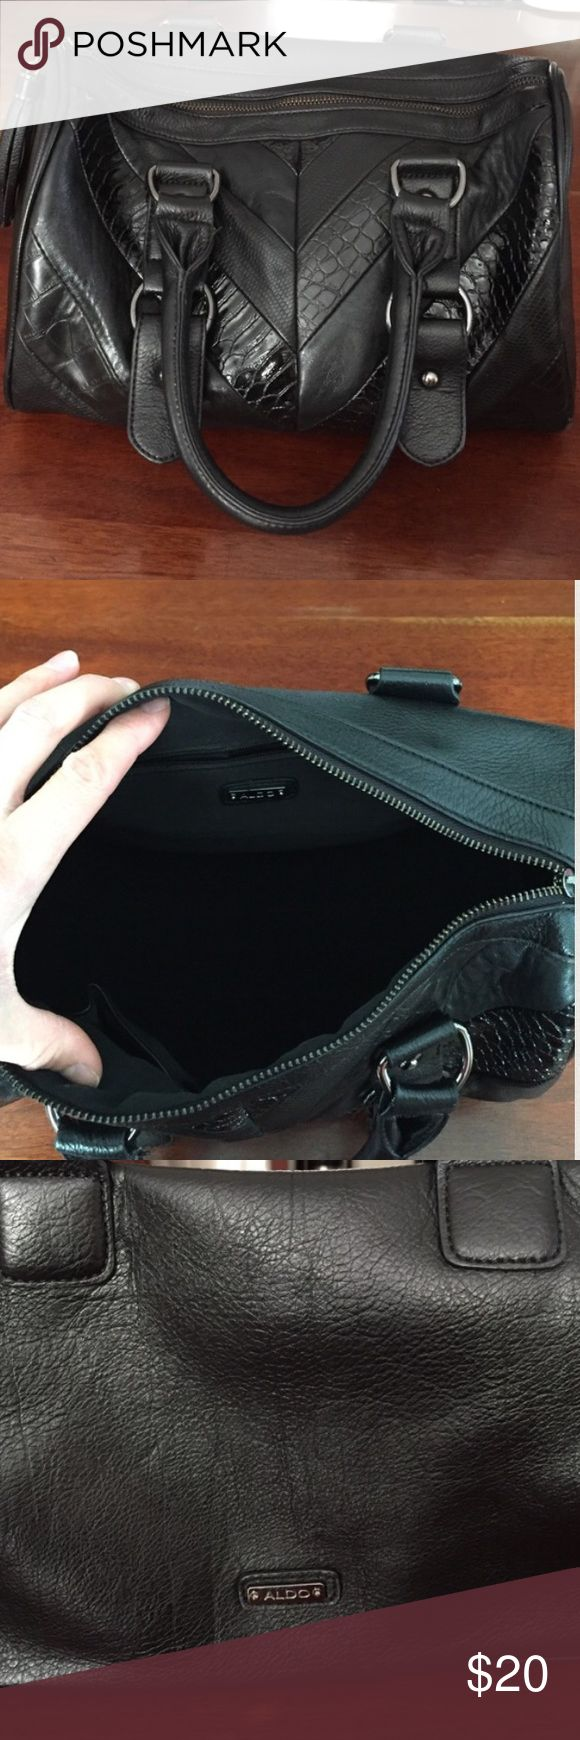 Black ALDO purse Black, Aldo purse very cute and spacious. This purse has been kept in a pet free and smoke free household. There are no signs of wear and tear and zipper functions perfectly. Aldo Bags Totes